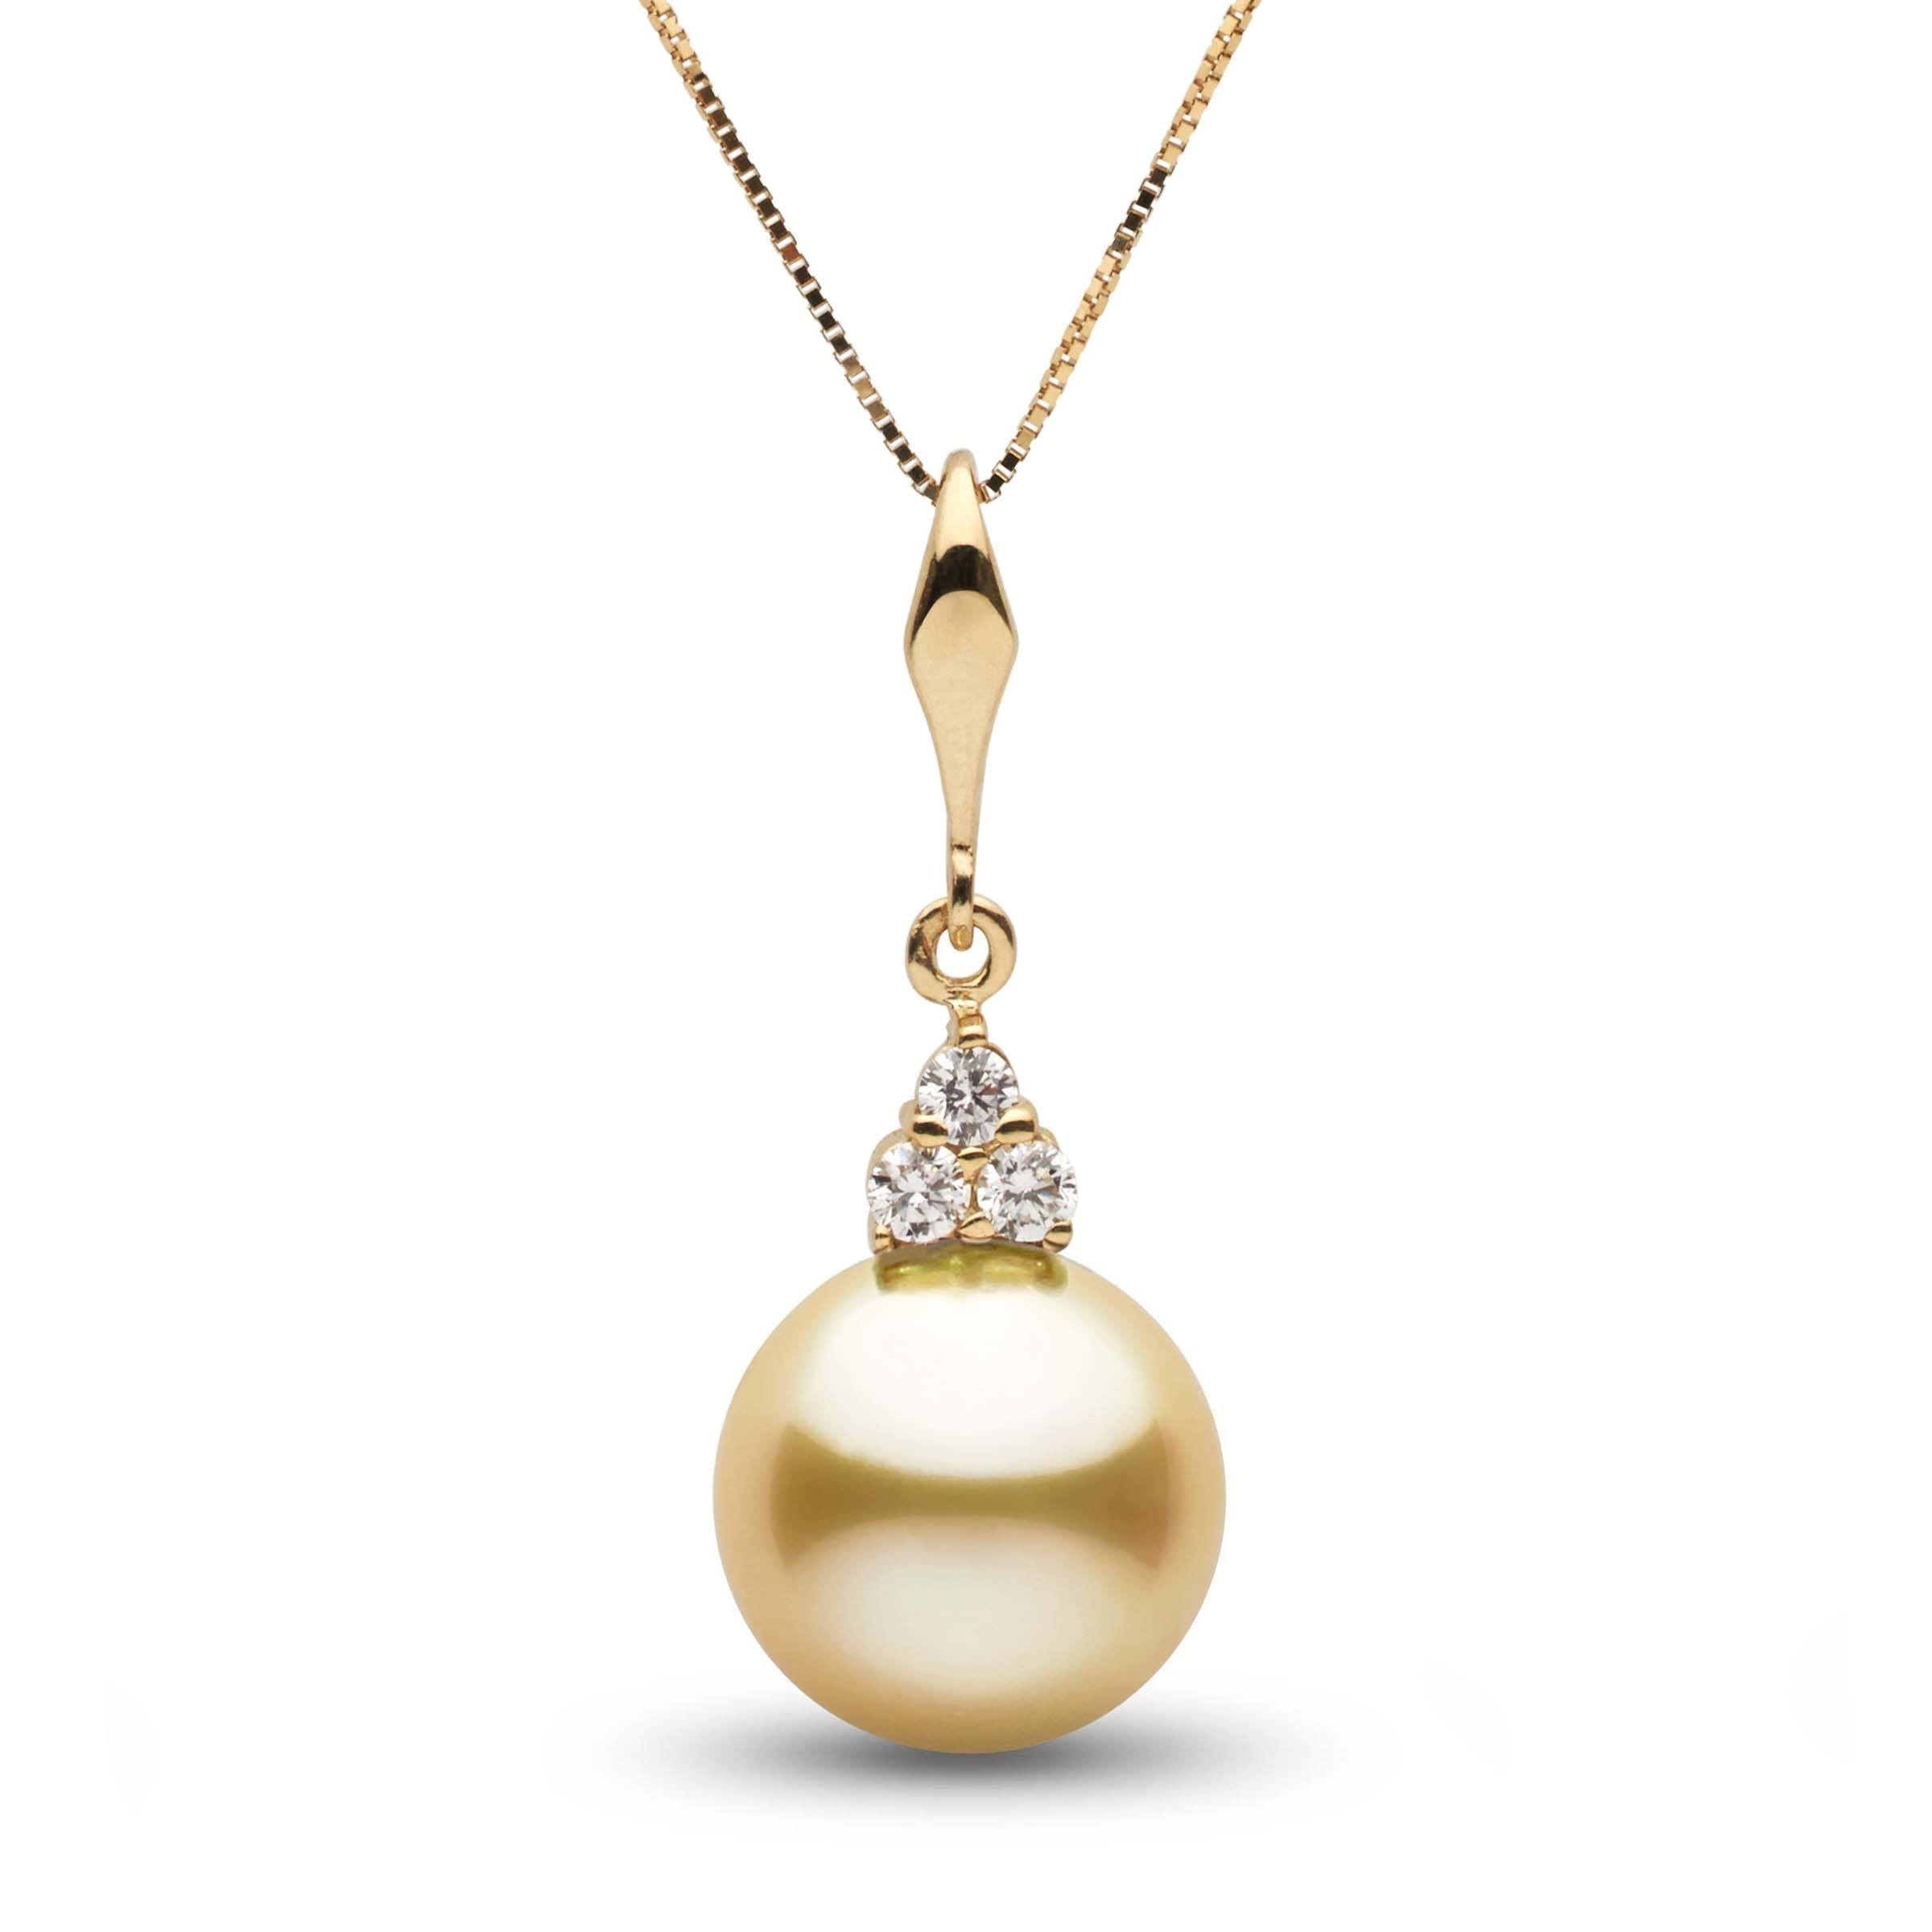 Always Collection Golden 10.0-11.0 mm South Sea Pearl and Diamond Pendant